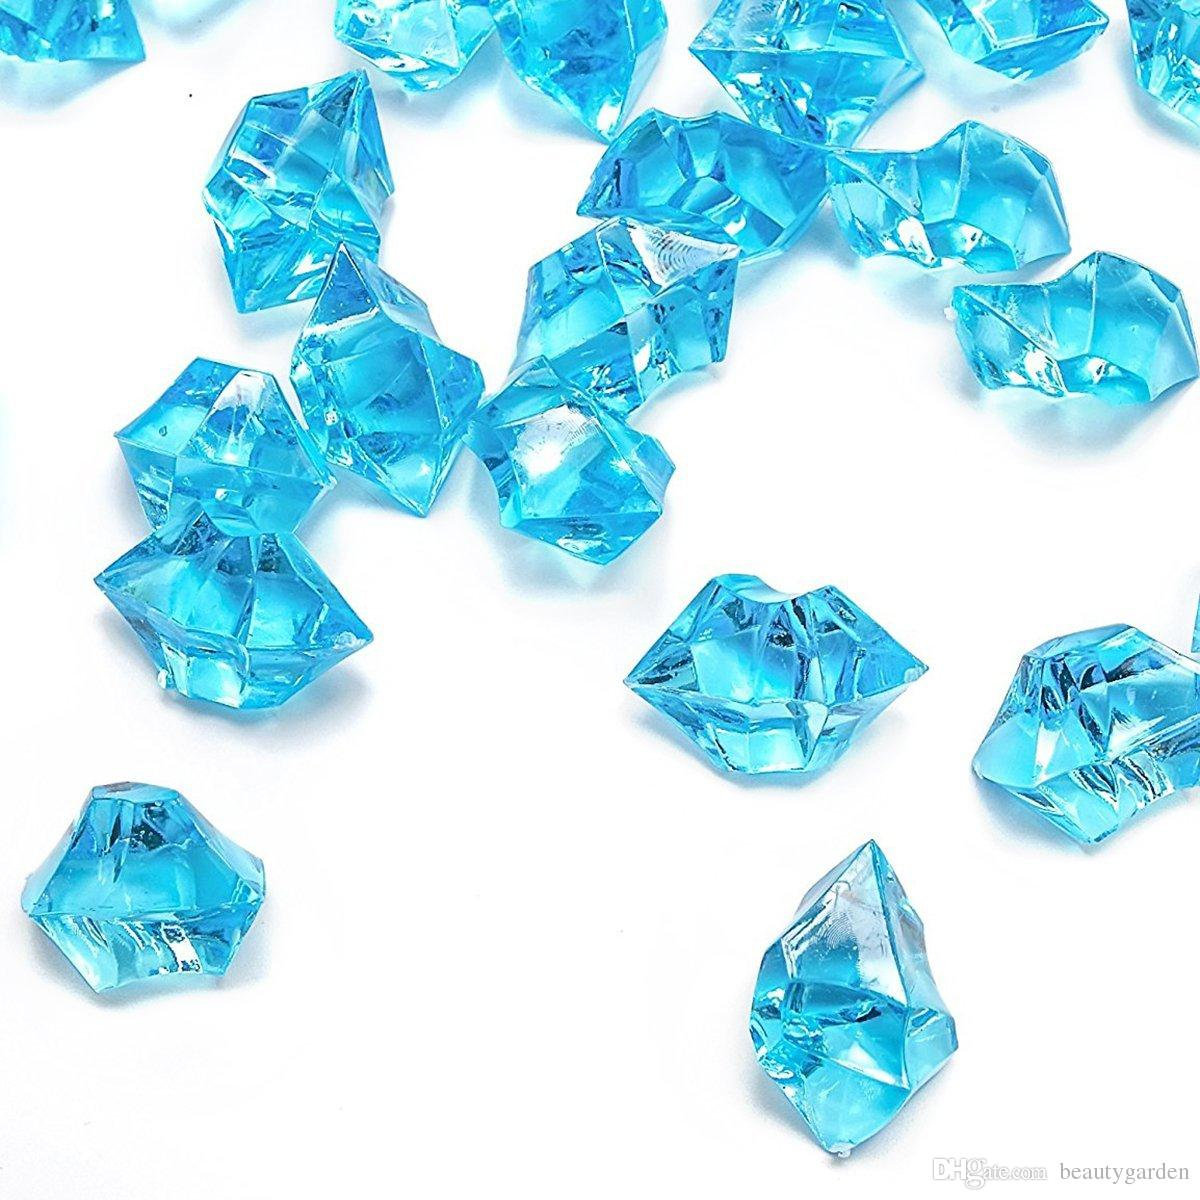 Acrylic Gems Ice Crystal Rocks For Vase Fillers, Party Table Scatter ...